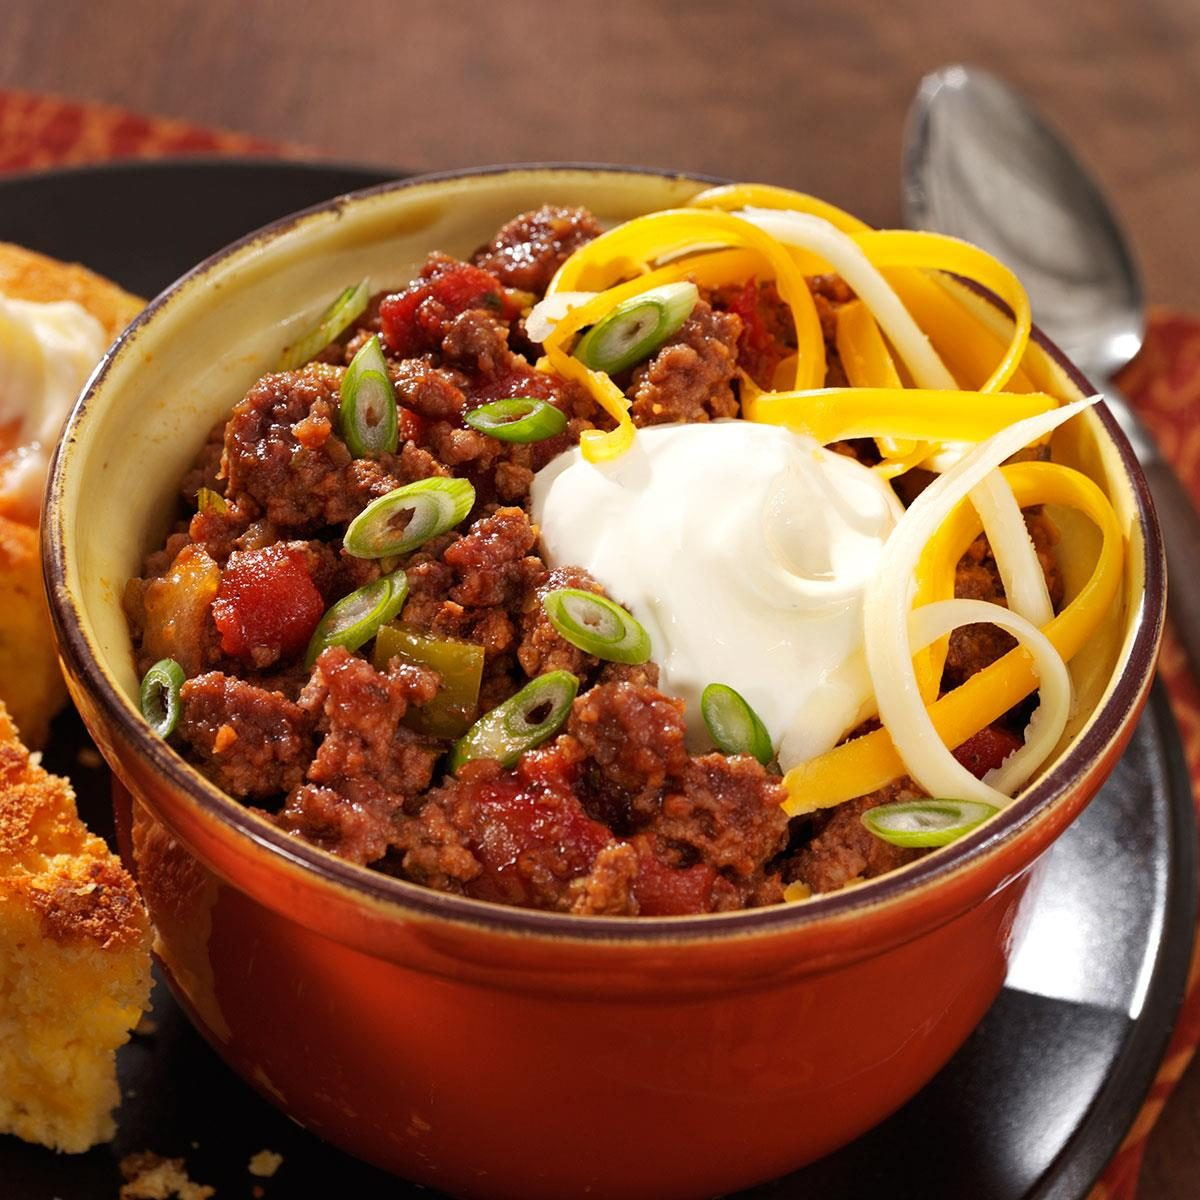 With the addition of diced tomatoes, tomato sauce, green peppers and spices this chili has quickly become a favorite of mine. What is great about this recipe is that it uses the crock pot.